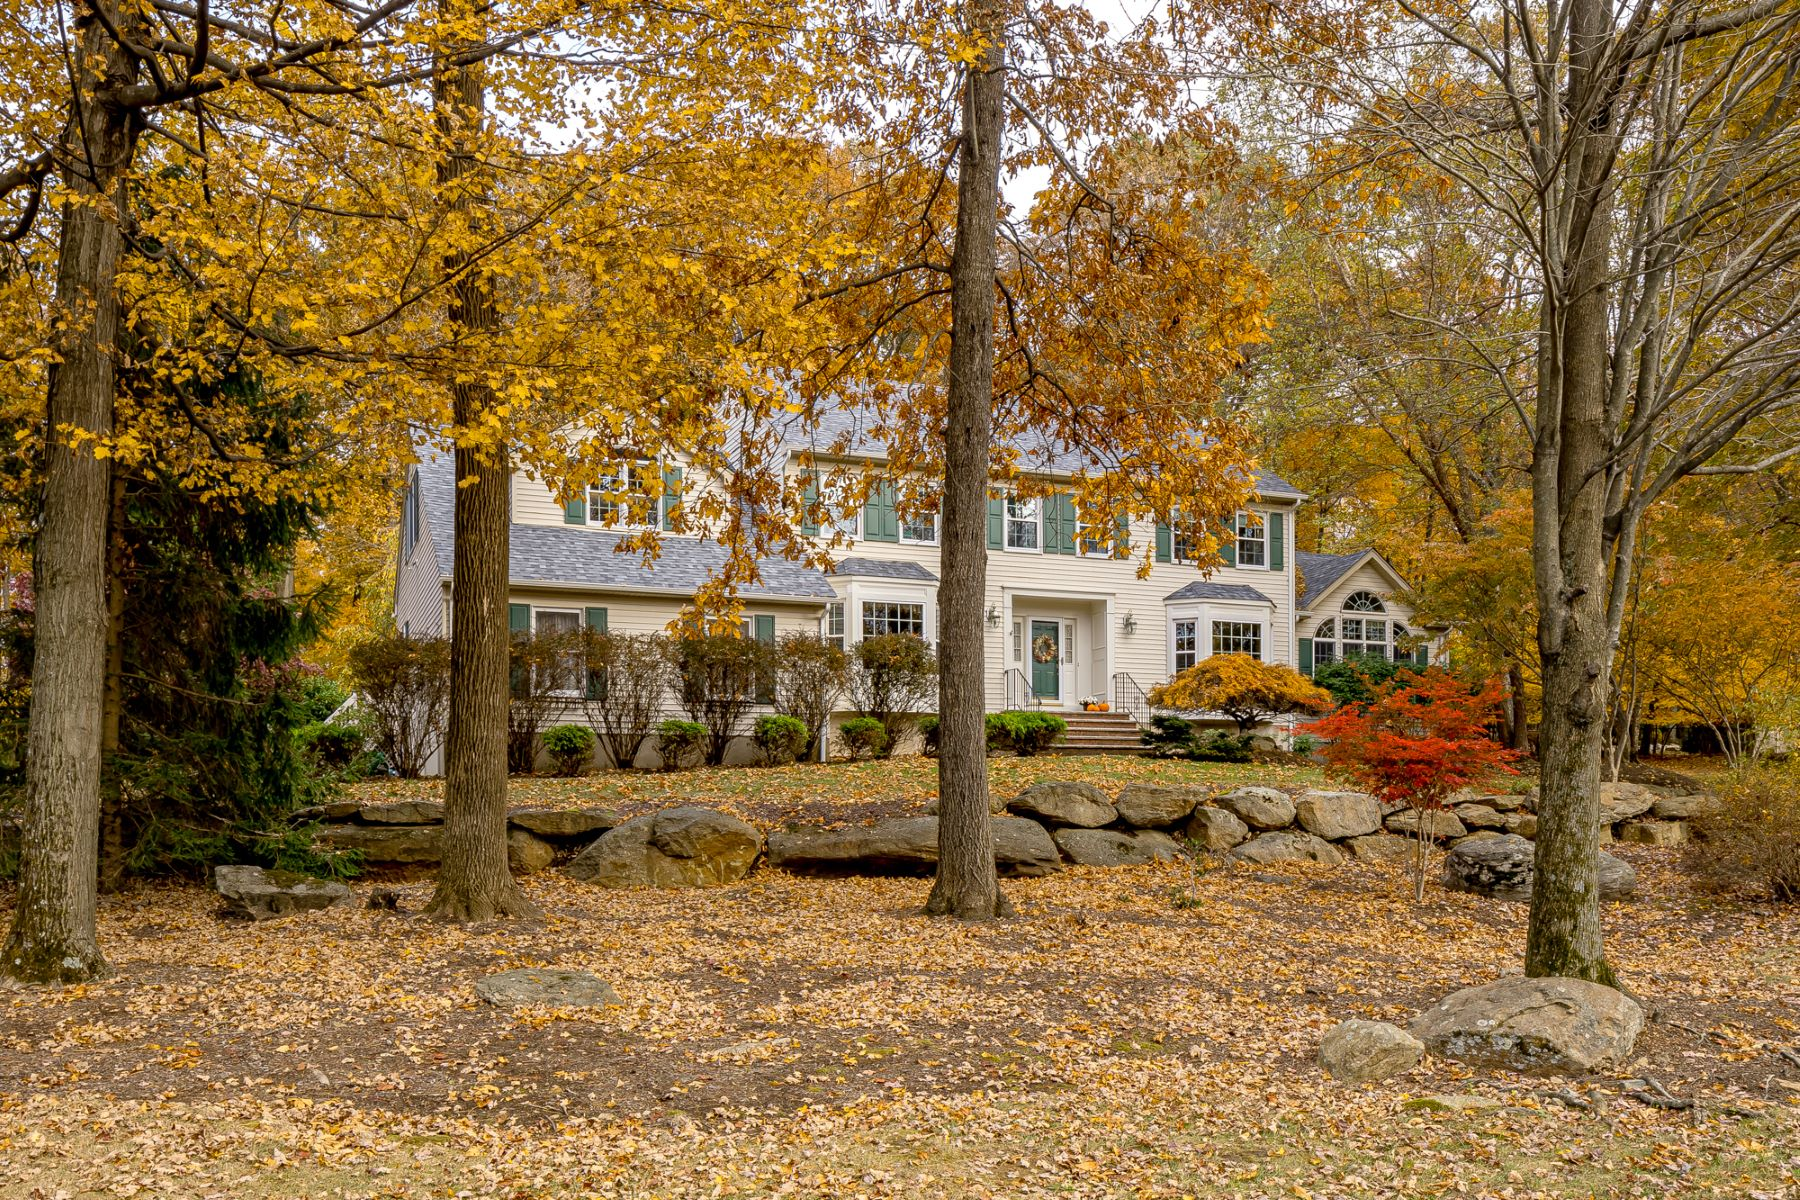 Single Family Homes for Sale at Classic Chester Colonial 10 Knollwood Terrace Chester, New Jersey 07930 United States